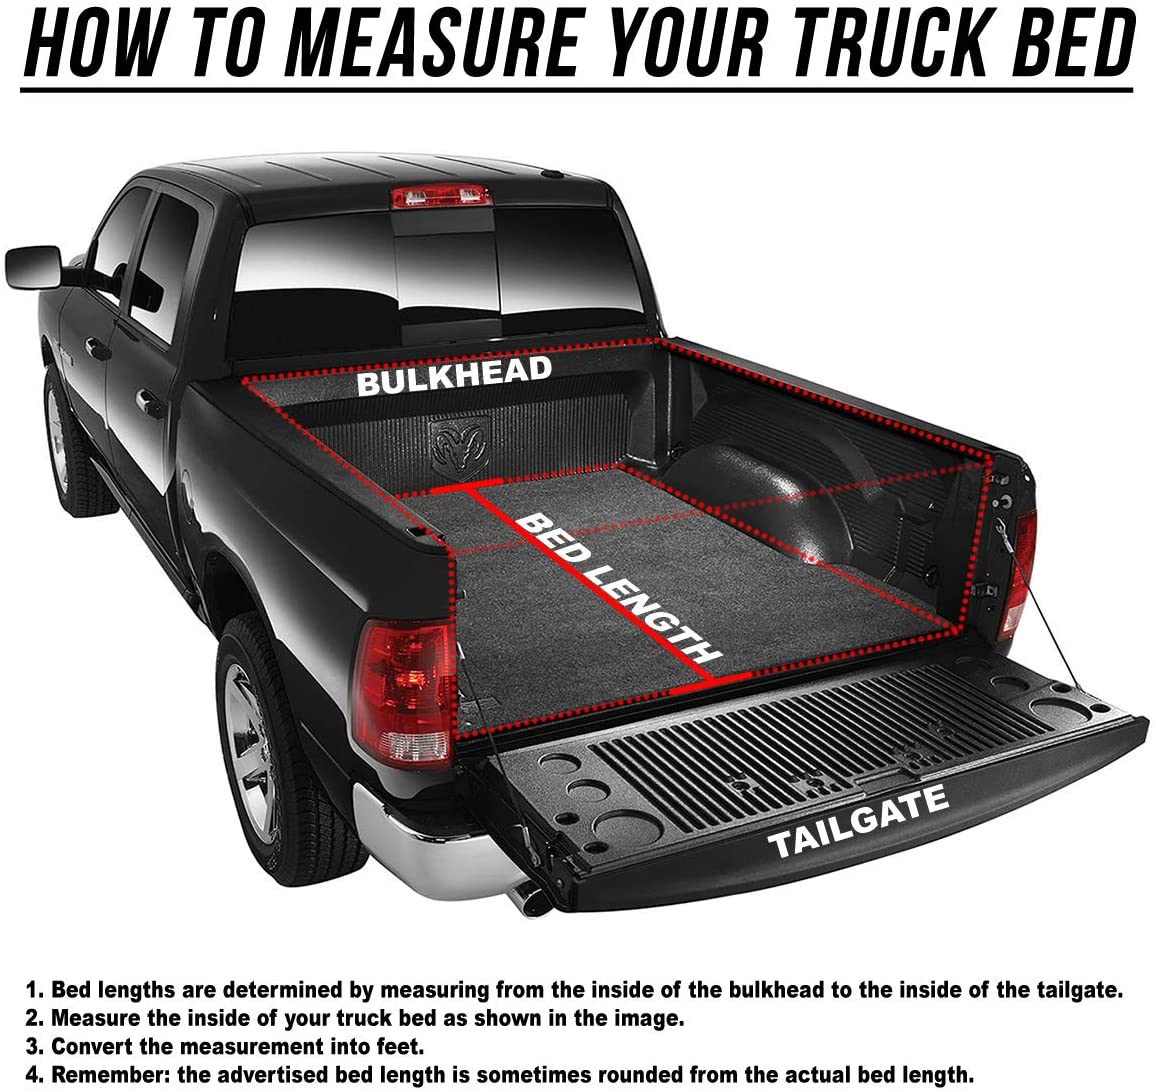 Lock Soft Roll Up Tonneau Tonno Cover For 03-18 Dodge Ram 2500//3500 8ft Long Bed